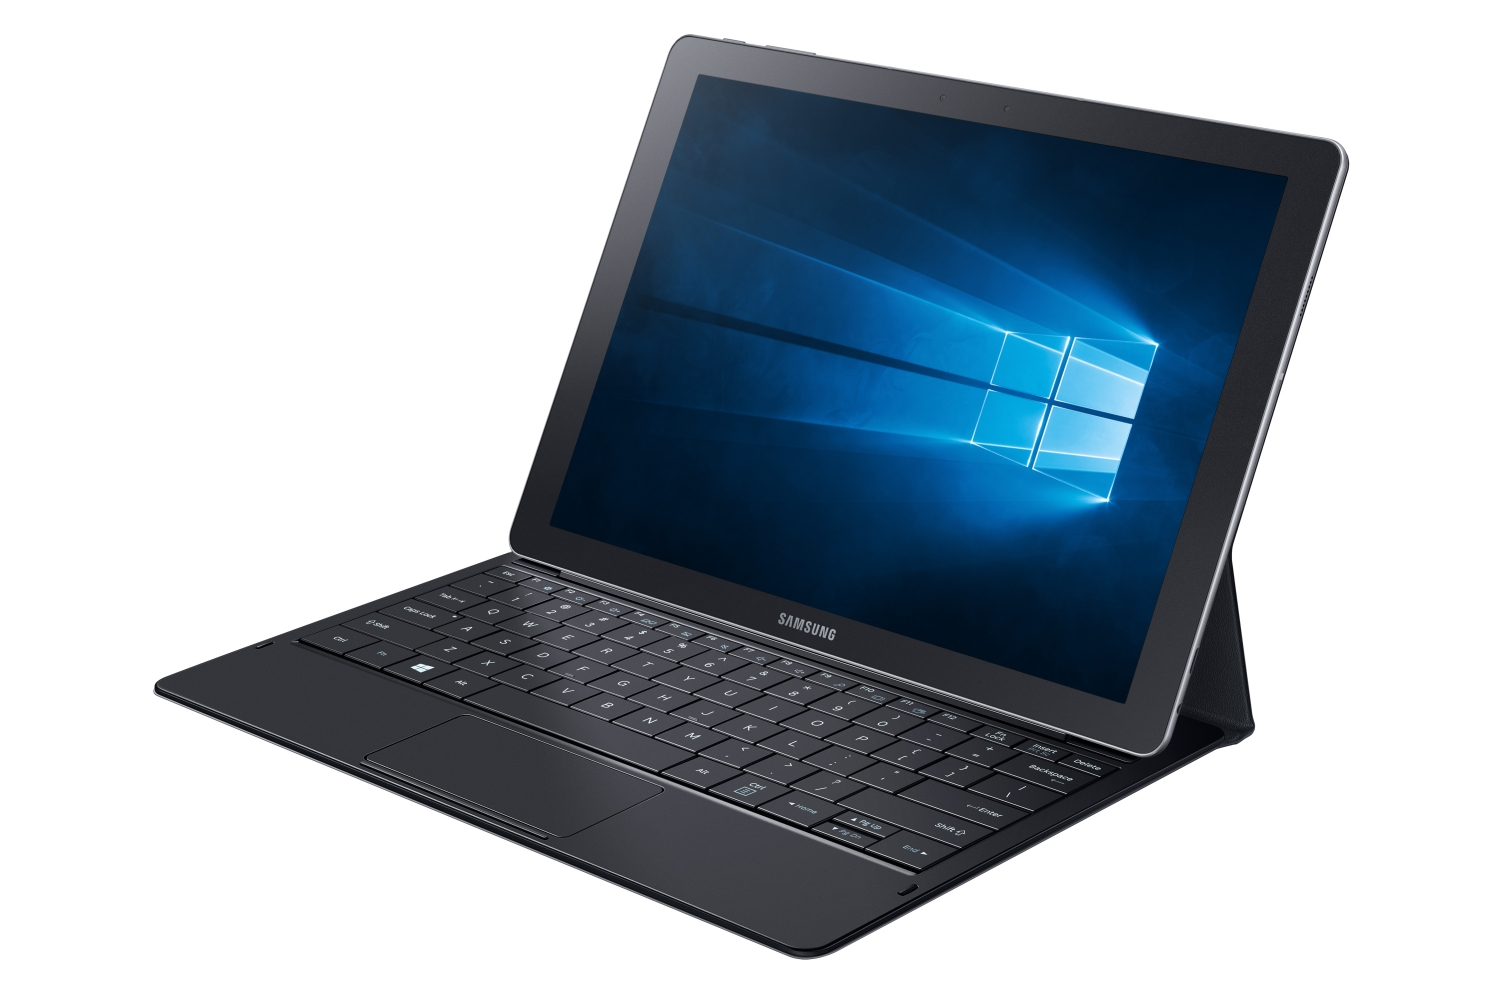 for the very popular new Windows 10 tablet Samsung Galaxy TabPro S